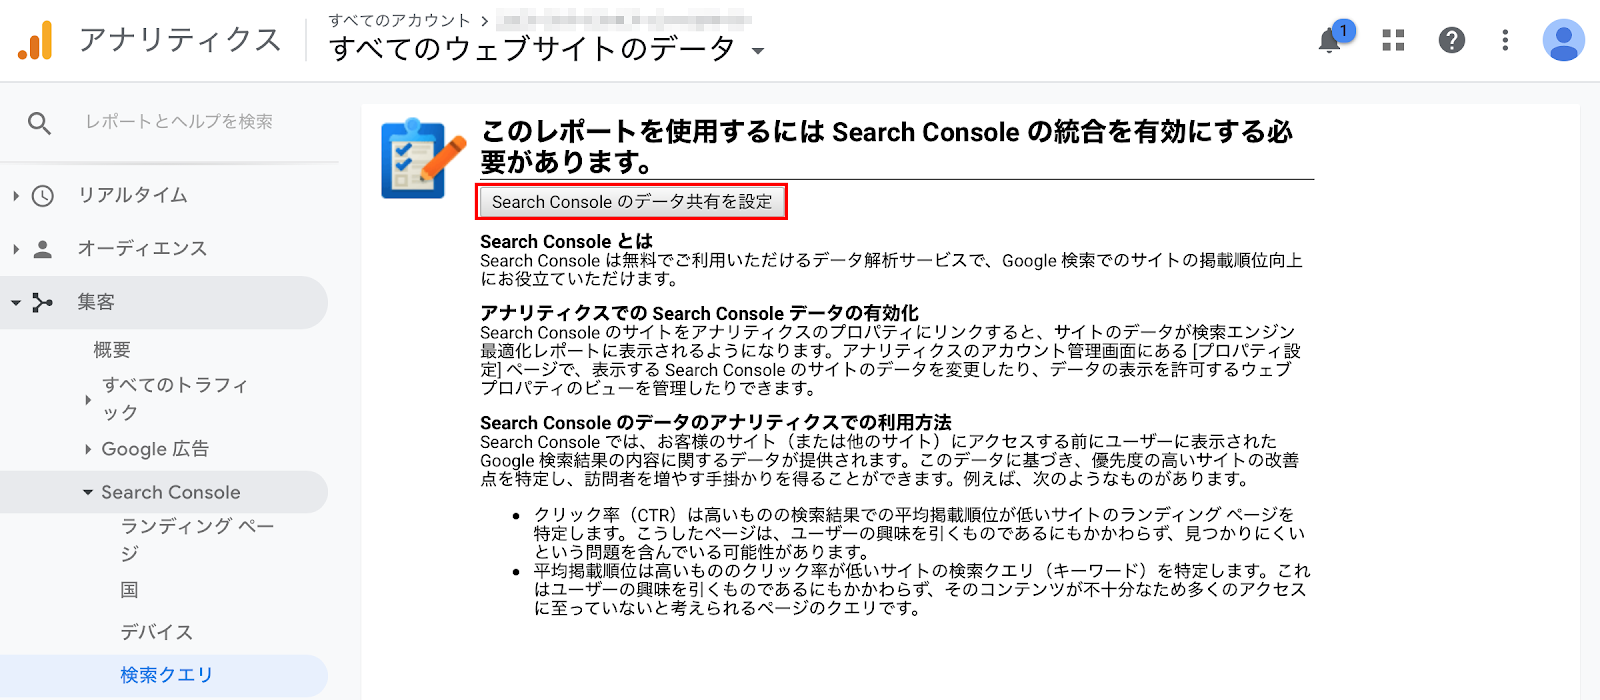 42_searchco_12.png